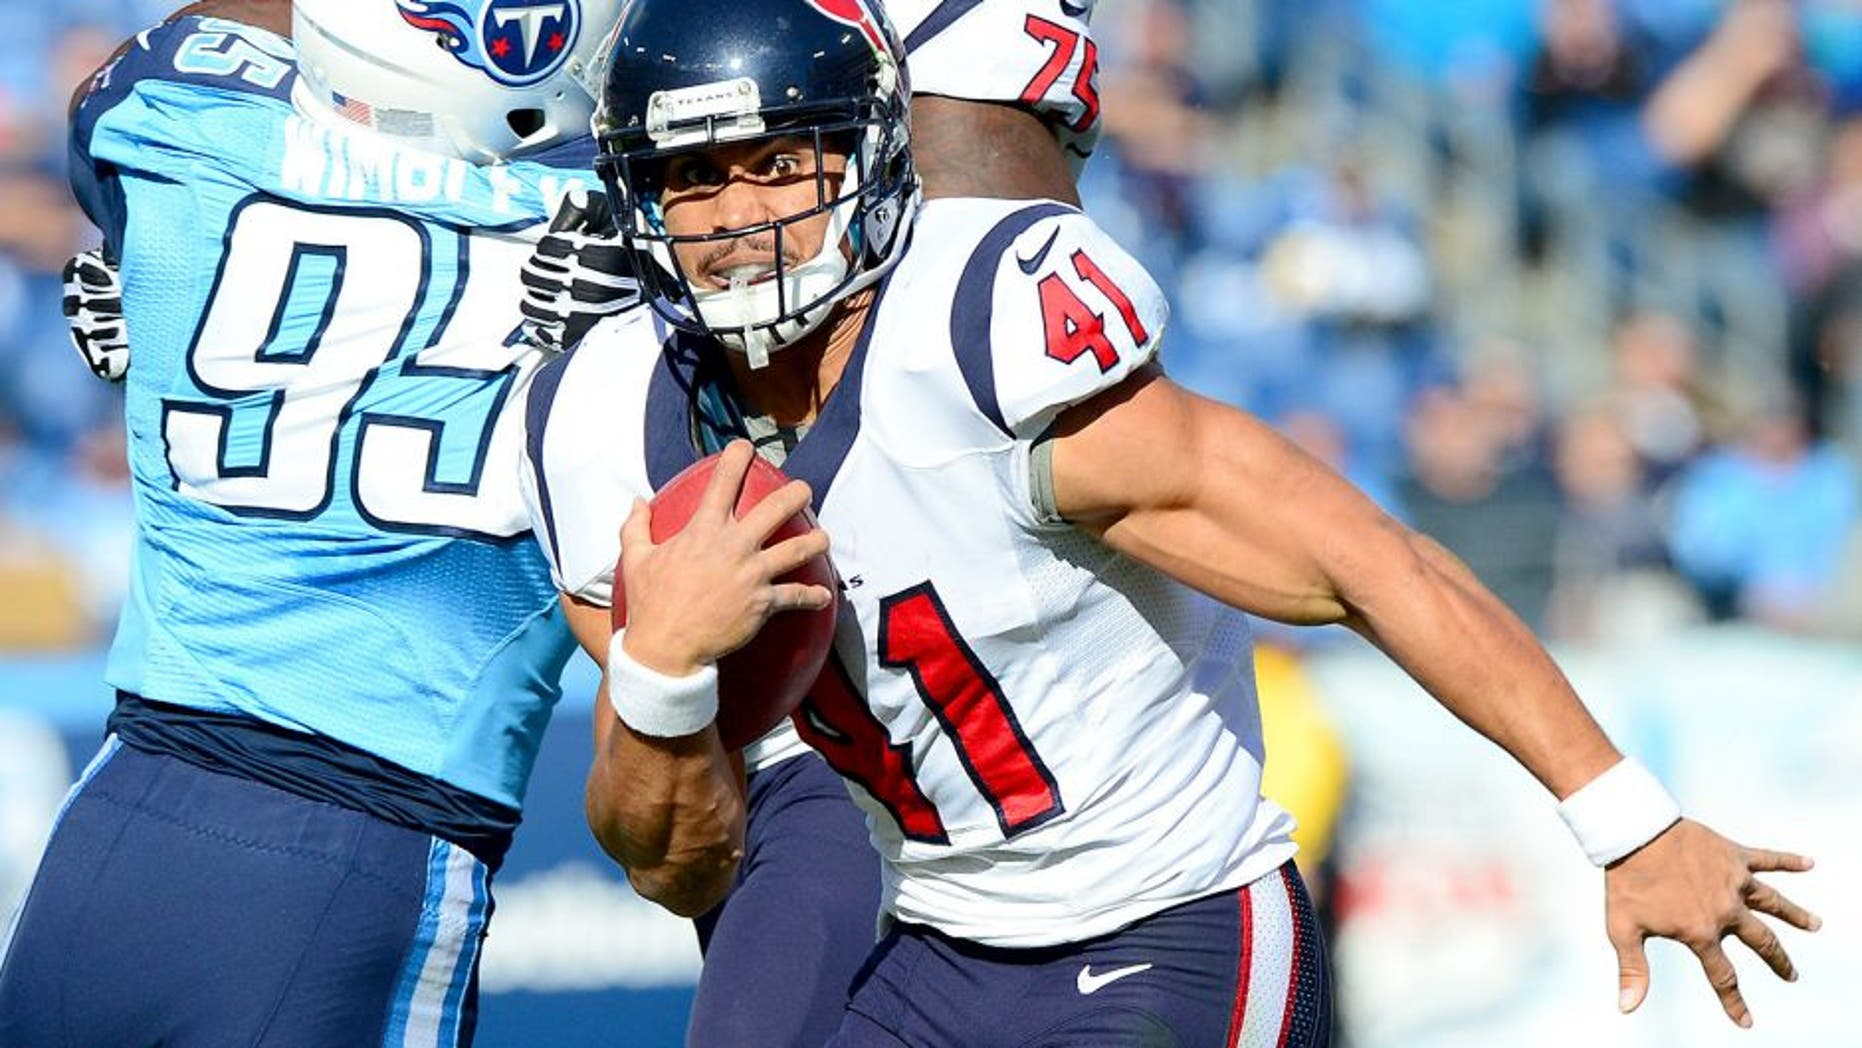 Dec 29, 2013; Nashville, TN, USA; Houston Texans running back Jonathan Grimes (41) carries the ball against the Tennessee Titans during the first half at LP Field. The Titans won 16-10. Mandatory Credit: Don McPeak-USA TODAY Sports